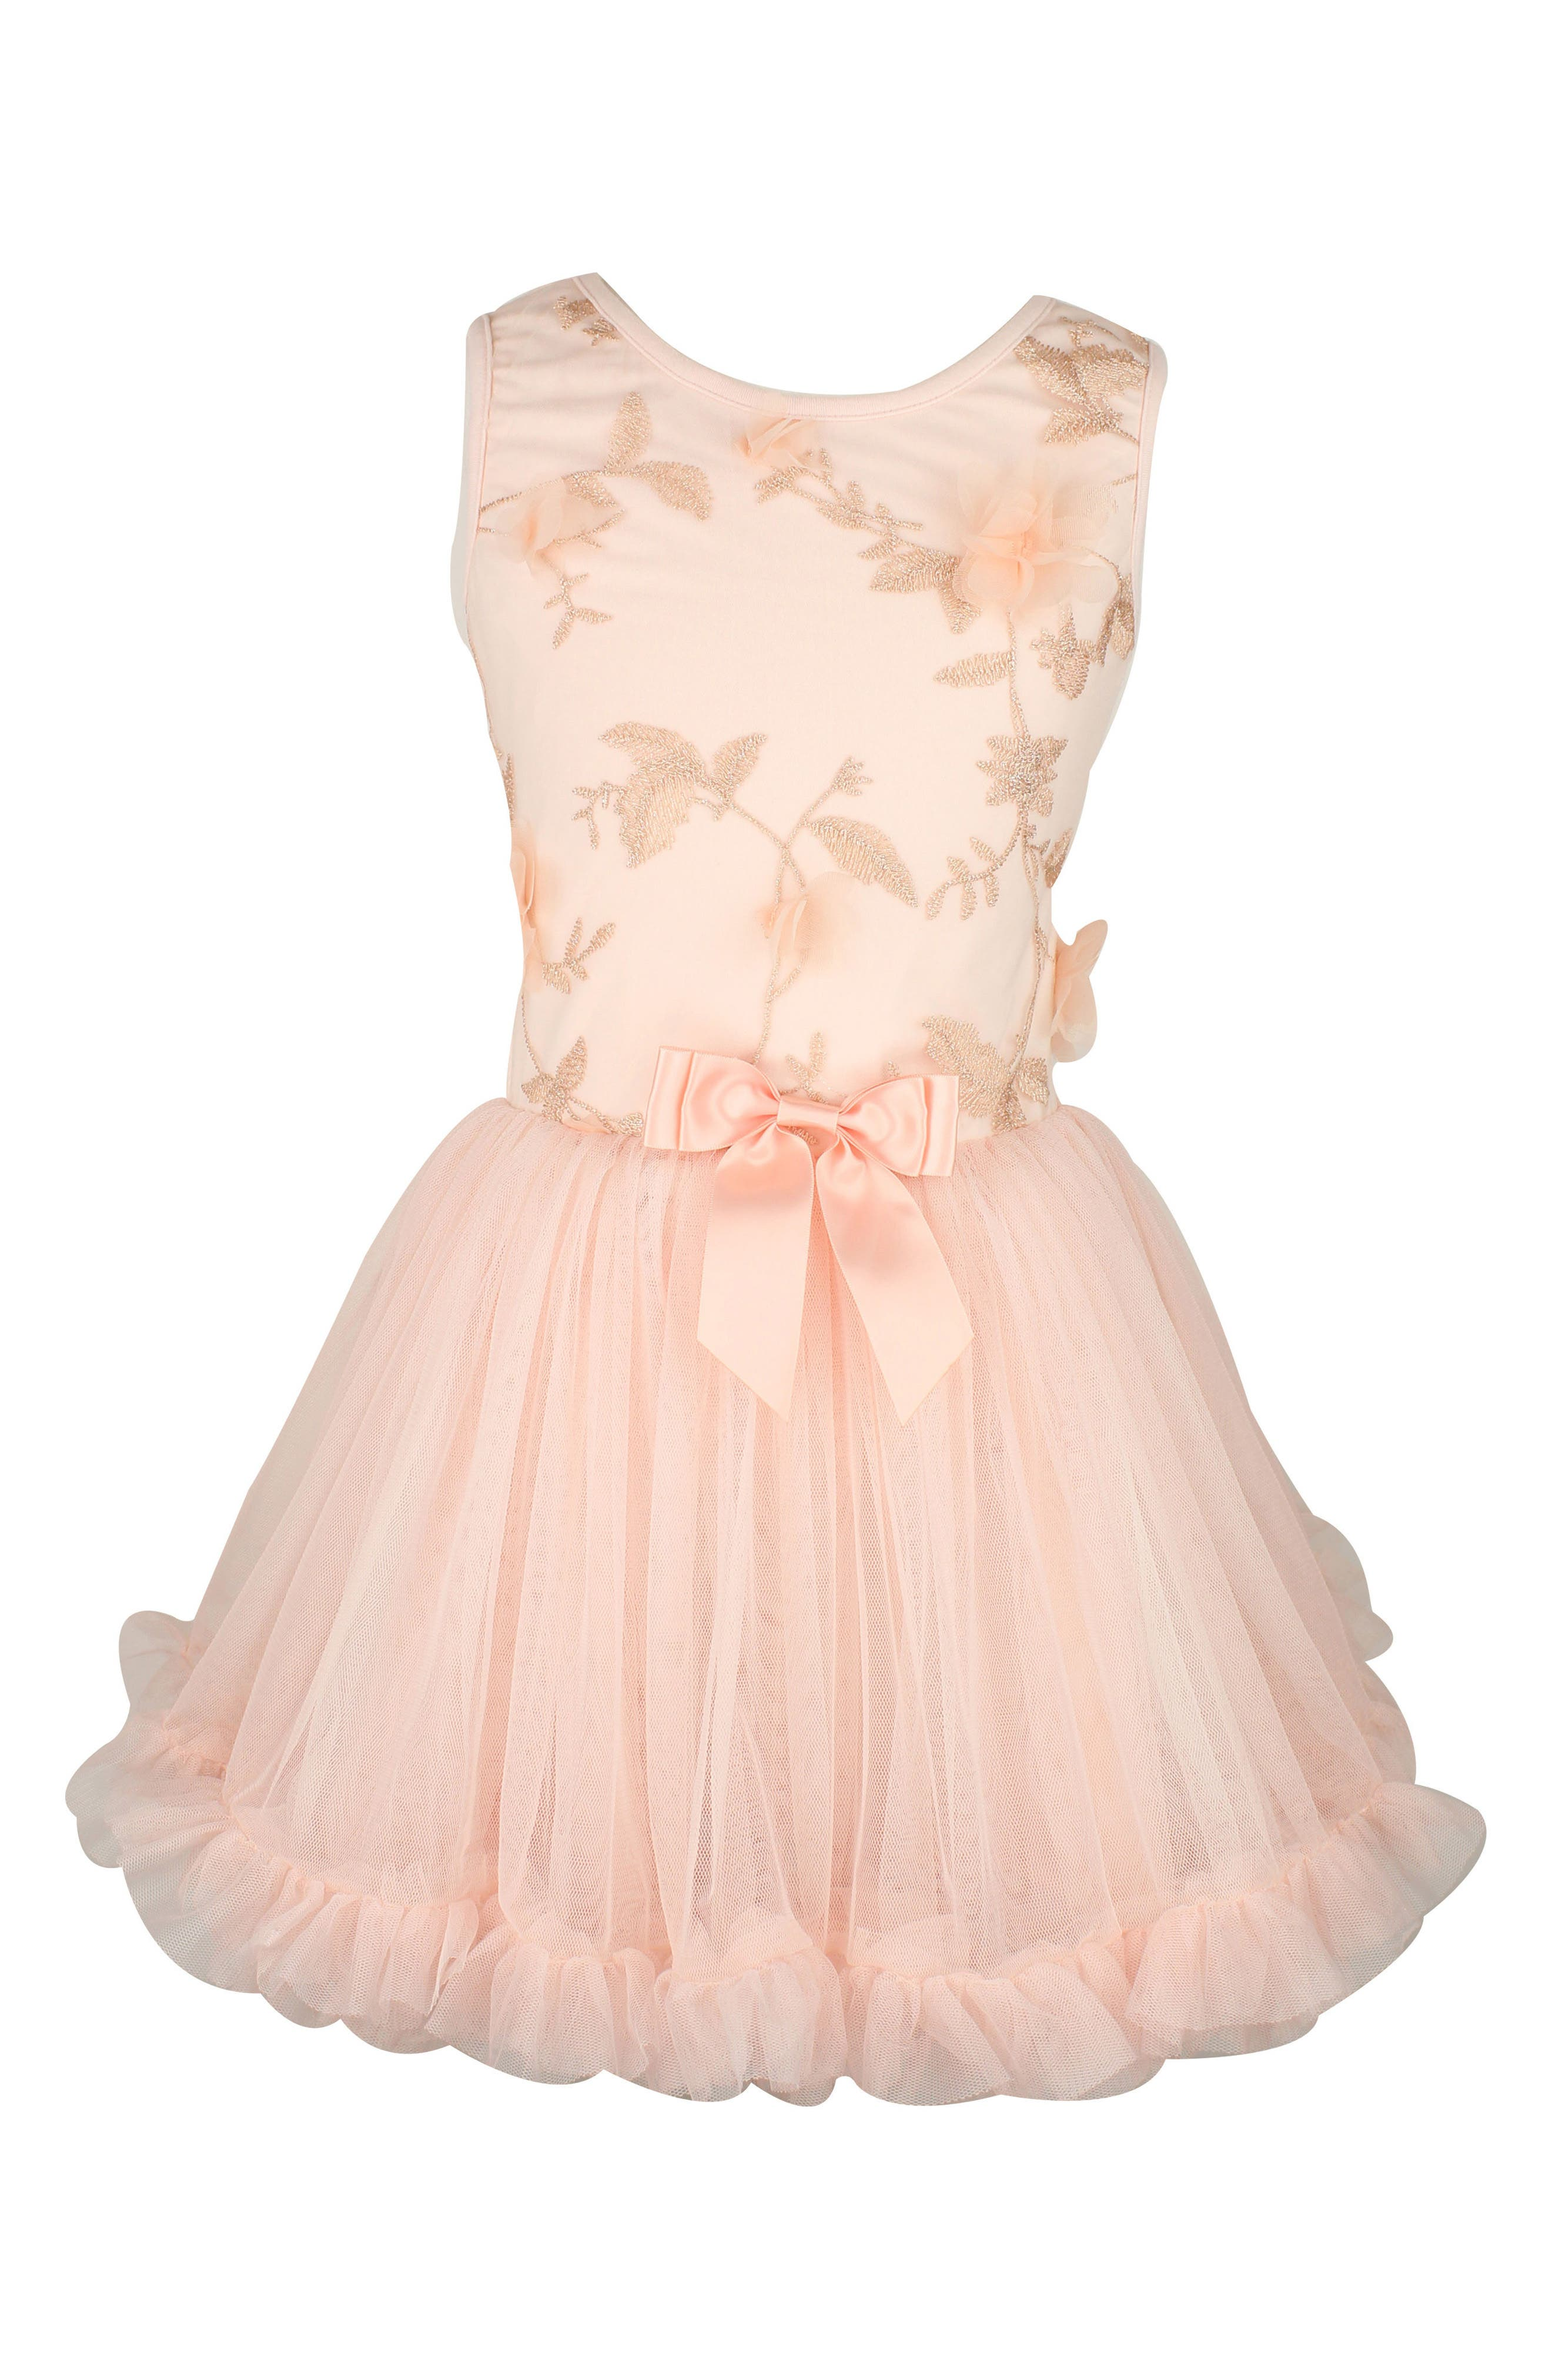 Embroidered Flower Dress,                             Main thumbnail 1, color,                             Dusty